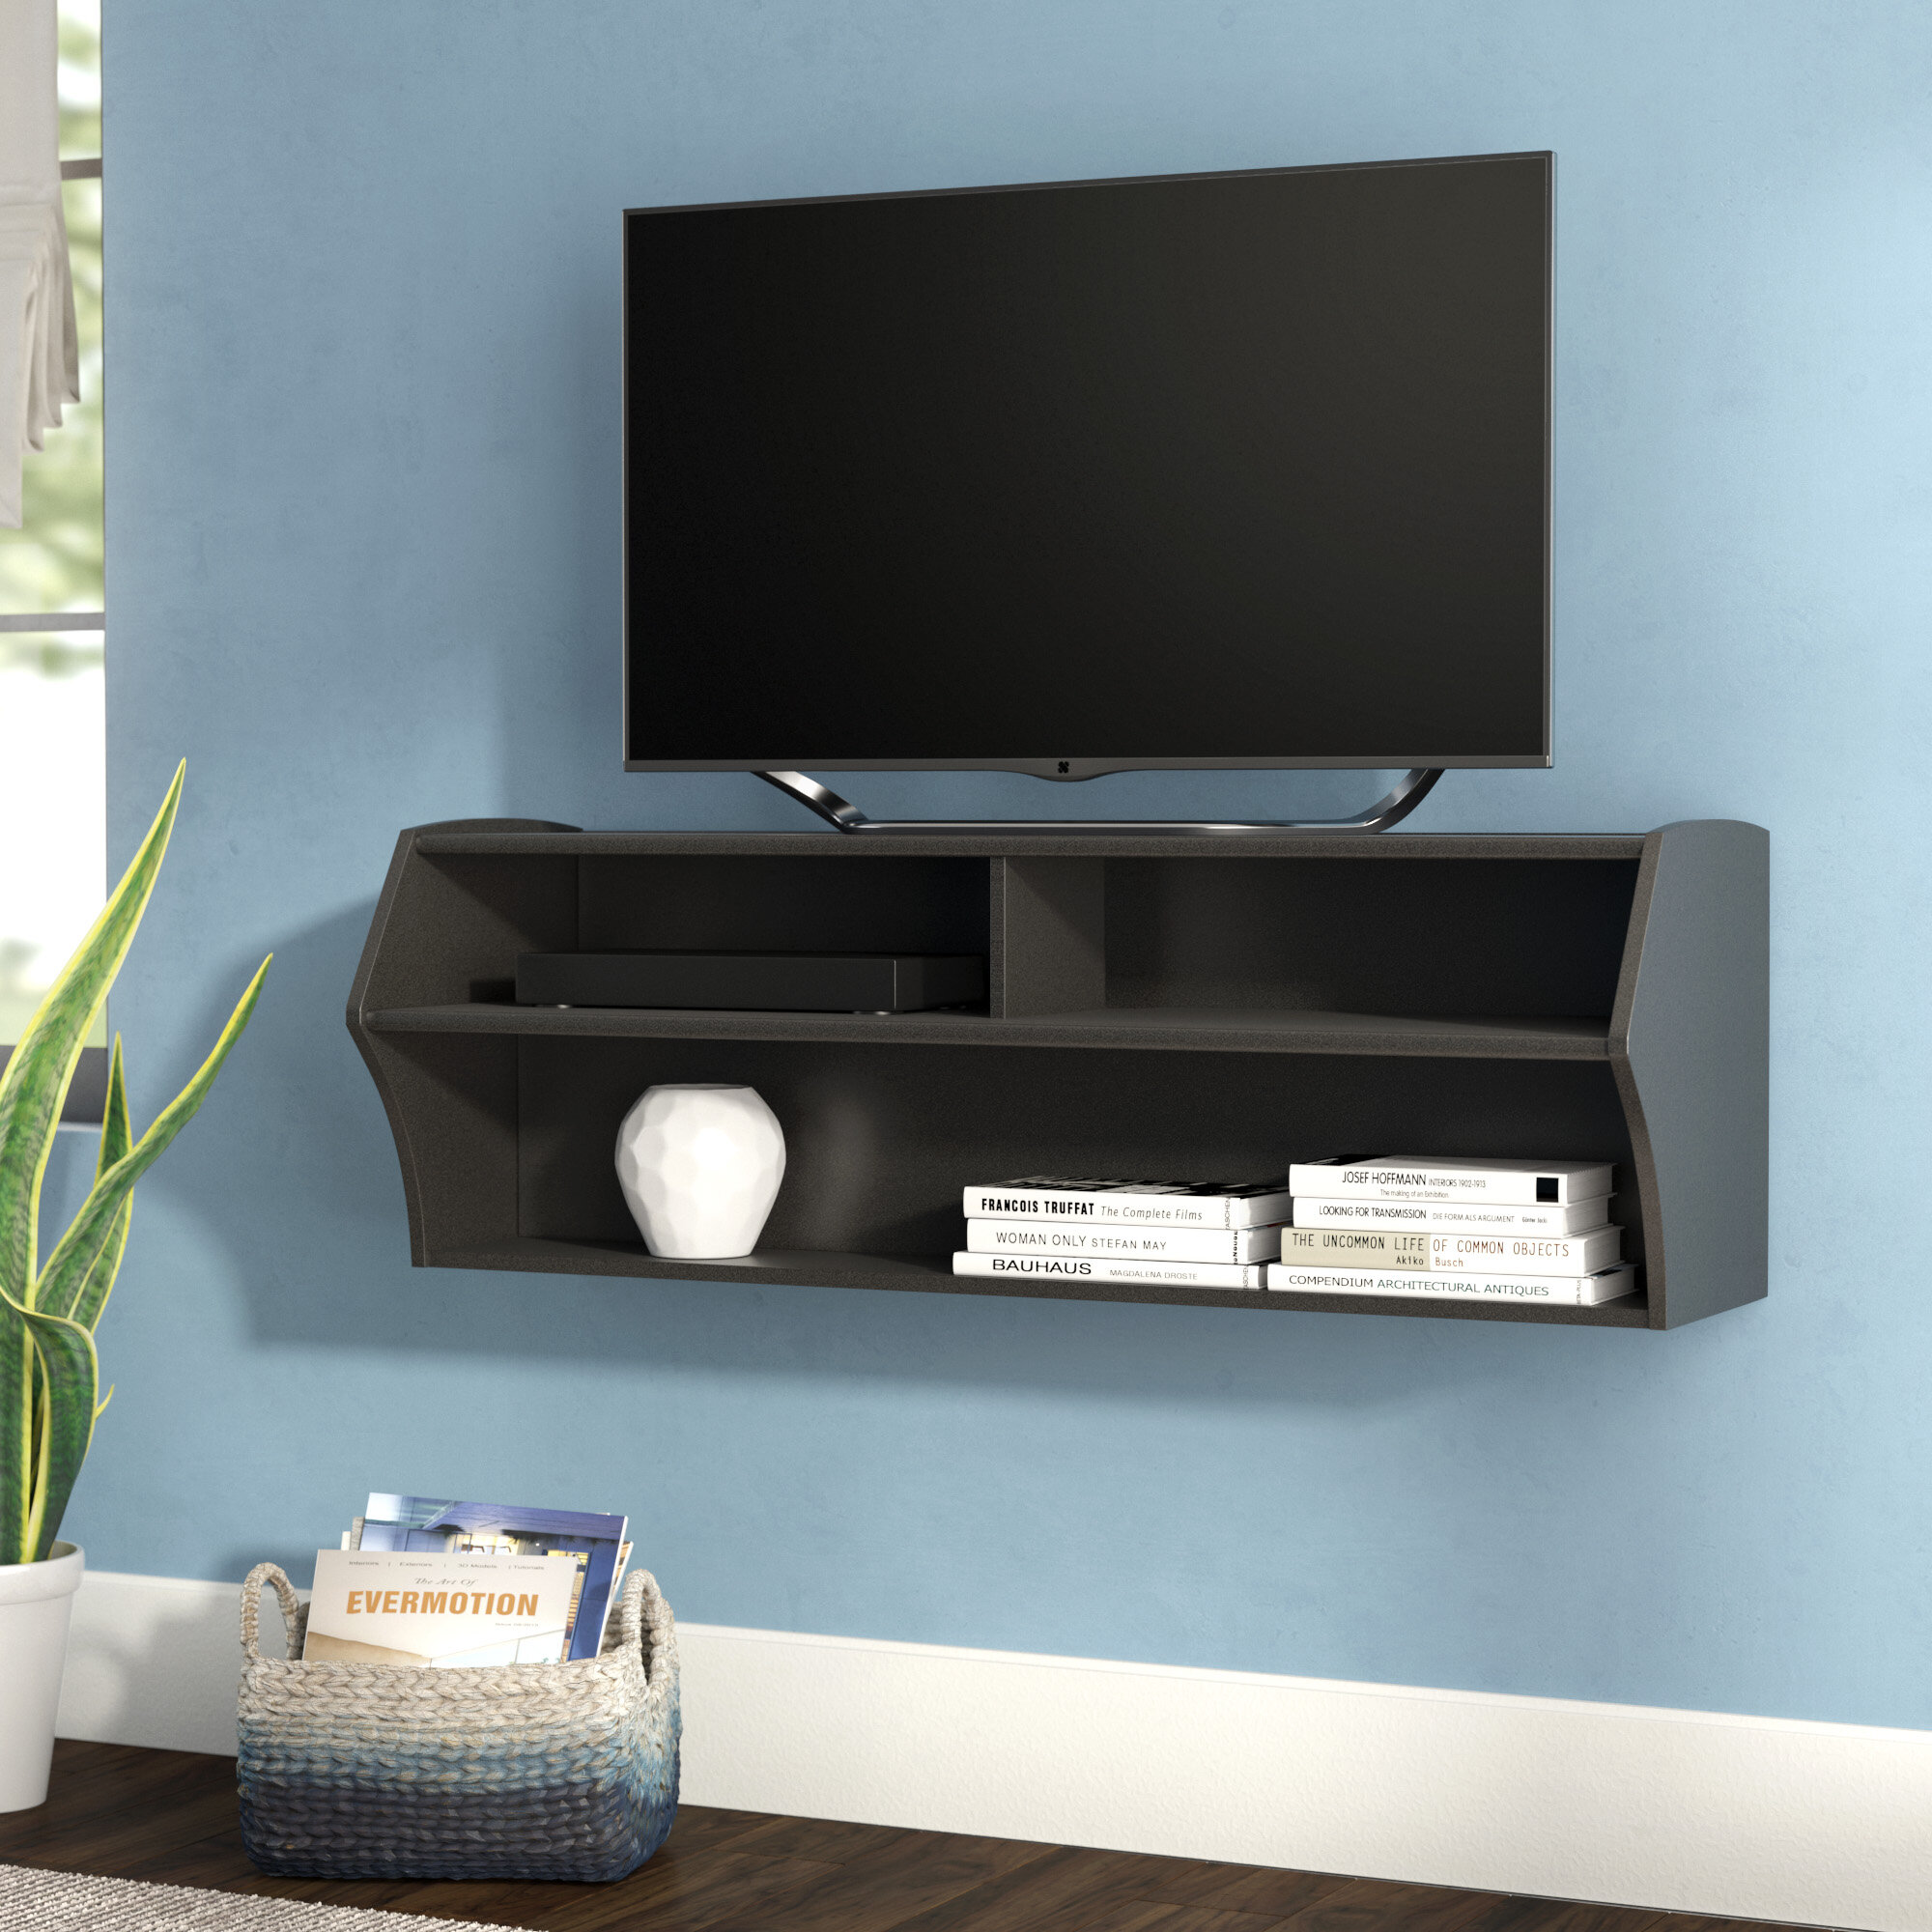 Ebern Designs Capirano Floating TV Stand for TVs up to 55